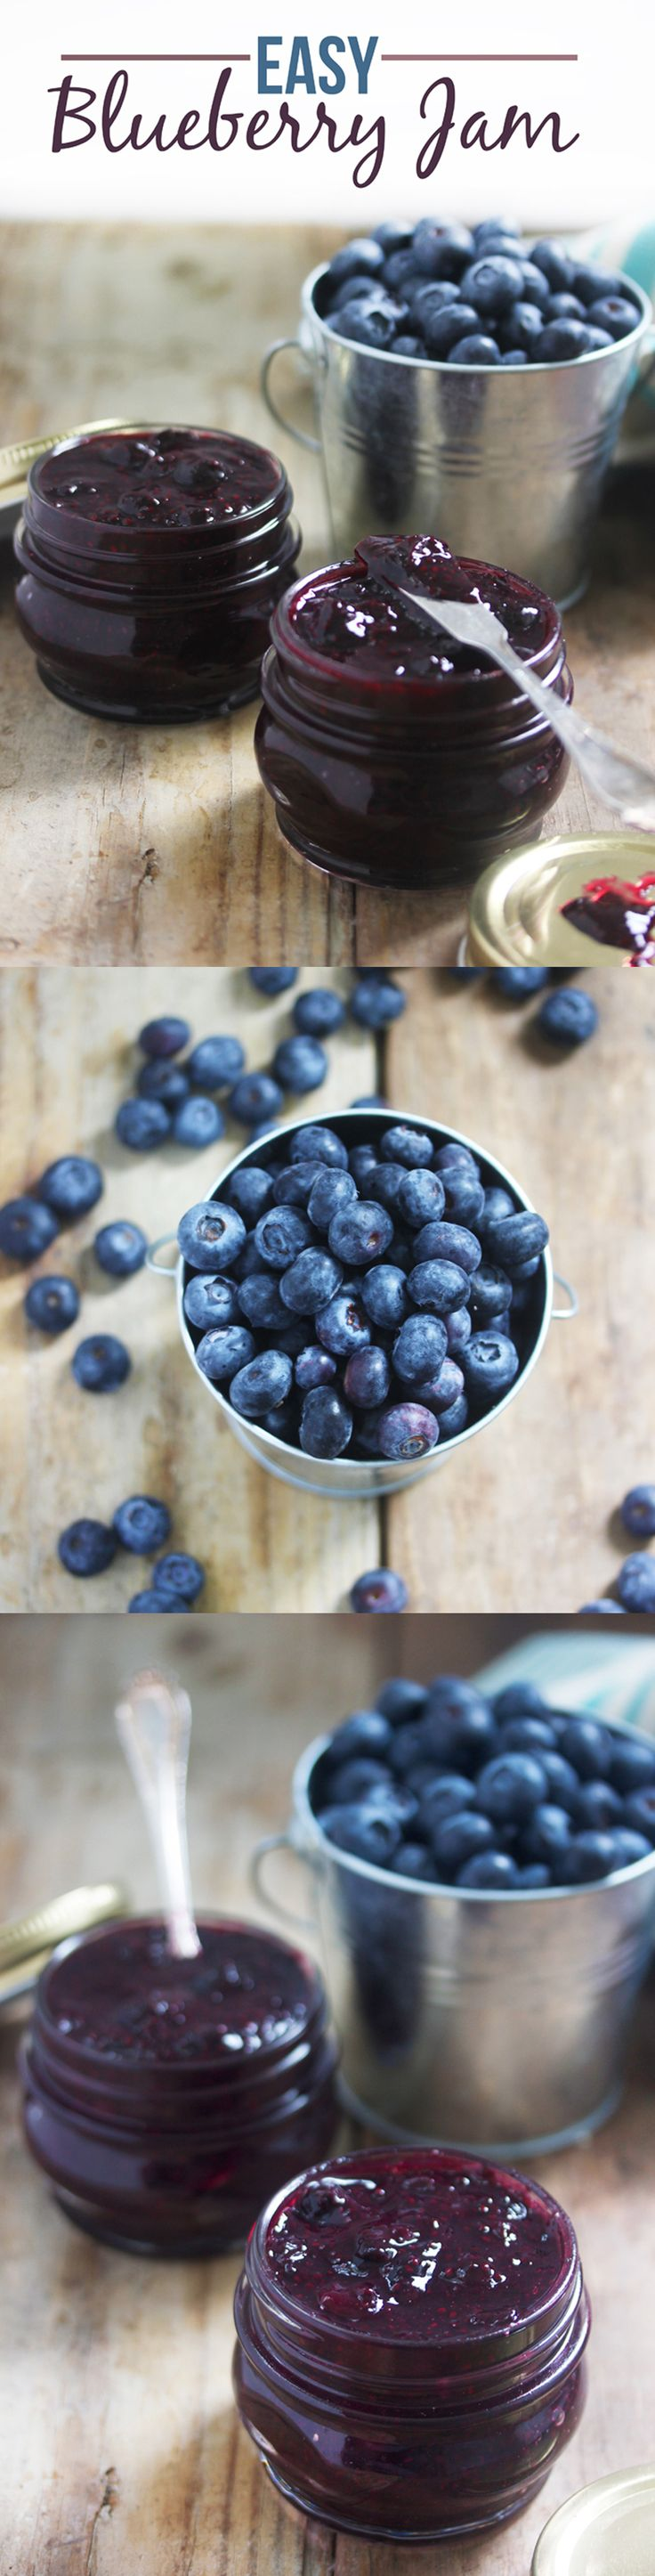 Easy Blueberry Jam!